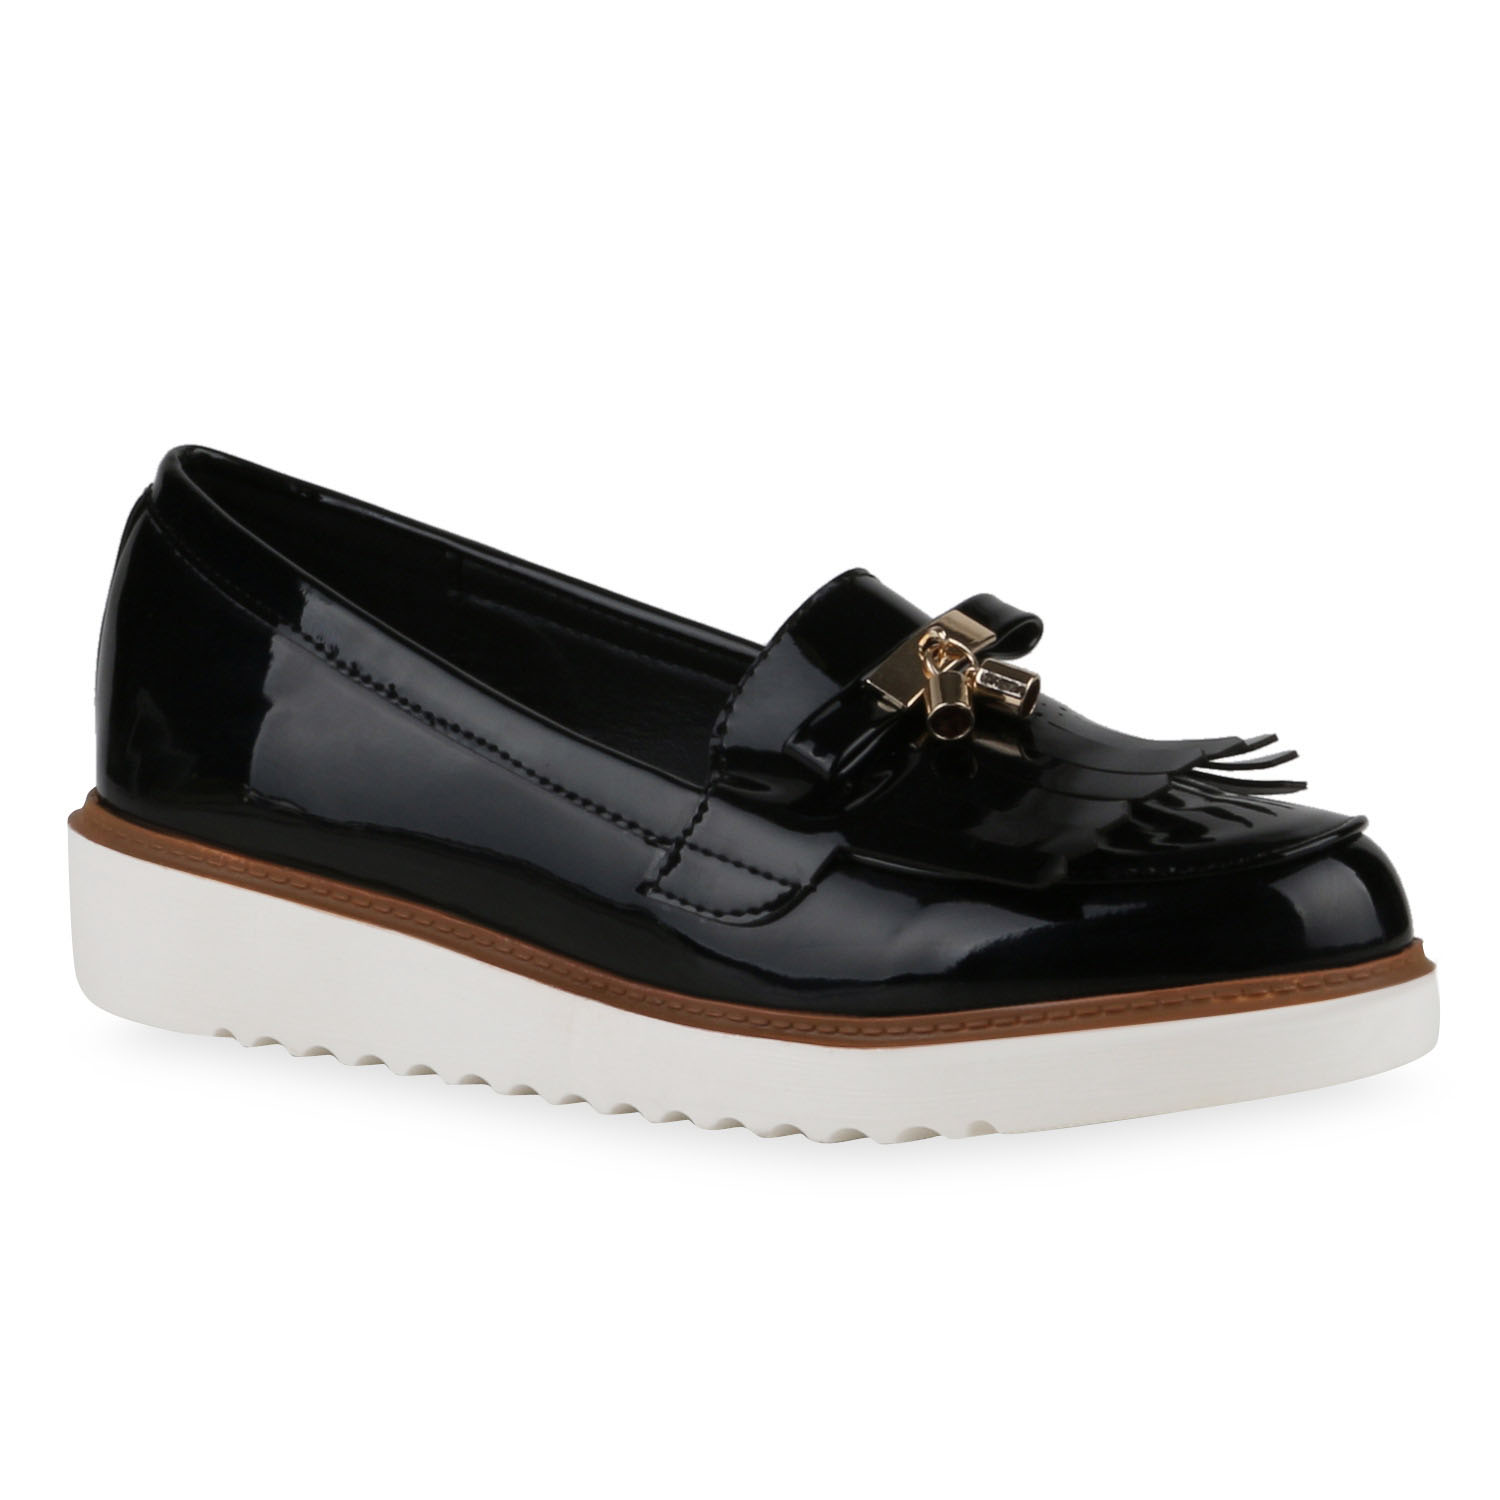 modische damen slipper lack tassel loafers fransen metallic 811223 ebay. Black Bedroom Furniture Sets. Home Design Ideas